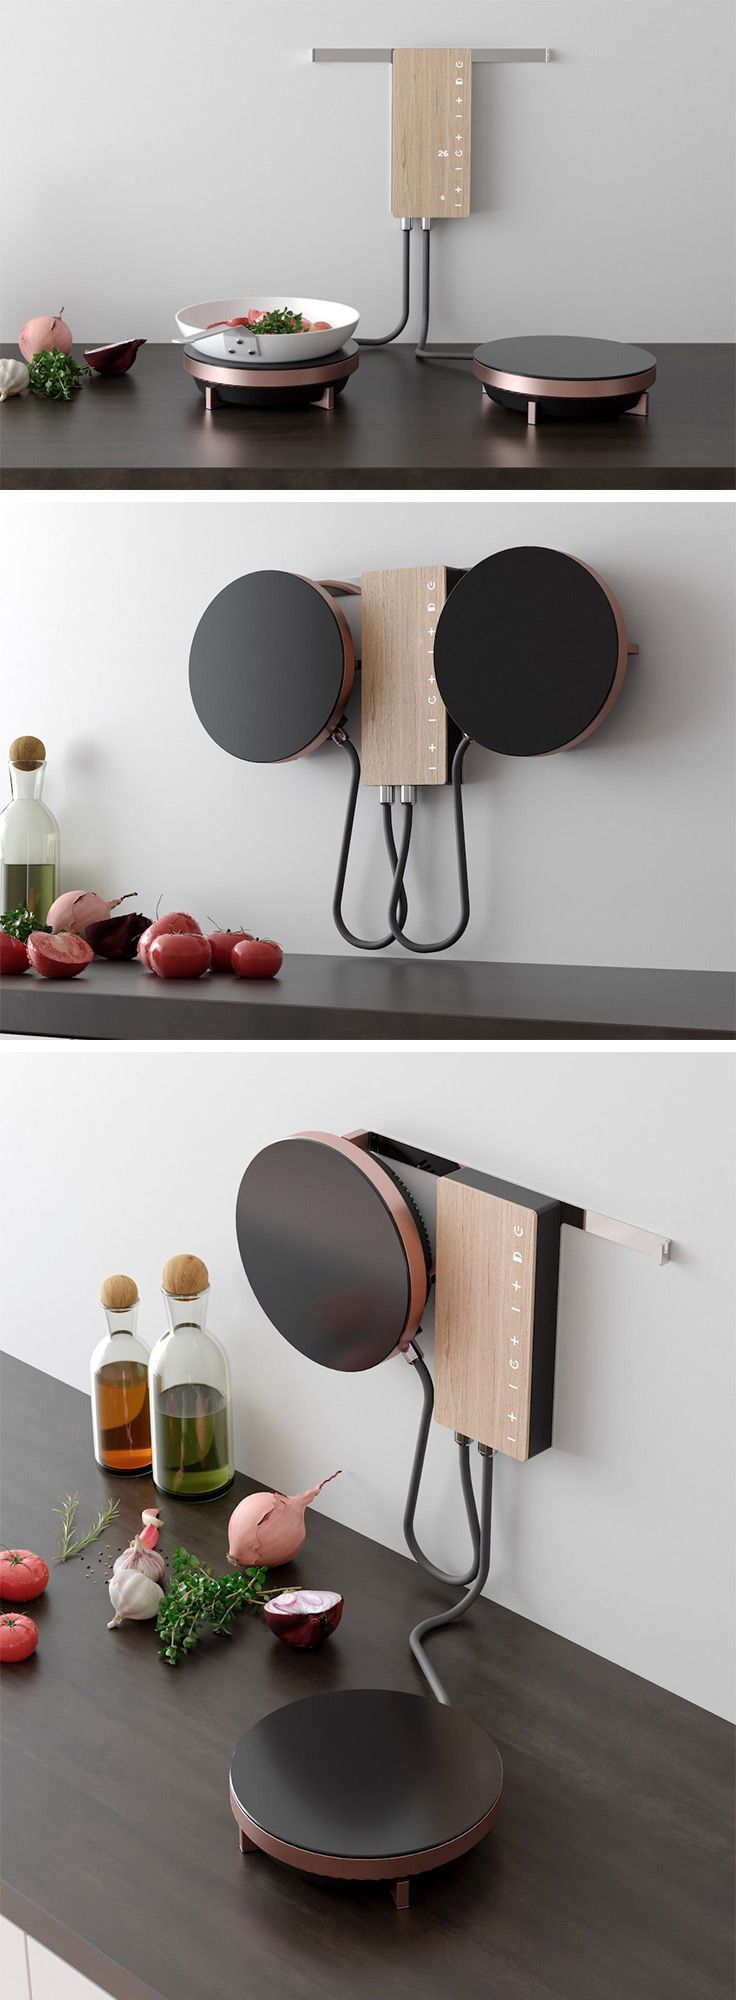 Ordine is an innovative cooking solution designed for the modern user. Optimized for small spaces, the design eliminates the need for a bulky traditional stove, clearing the way for more cabinet and counter space. The design features two hob units that are mounted on a central power hub on the wall. Elevated neatly out of the way, the user must simply grab one or both hobs off the wall and set the desired temperature to activate. – Rookie Dragon #tinyhouse